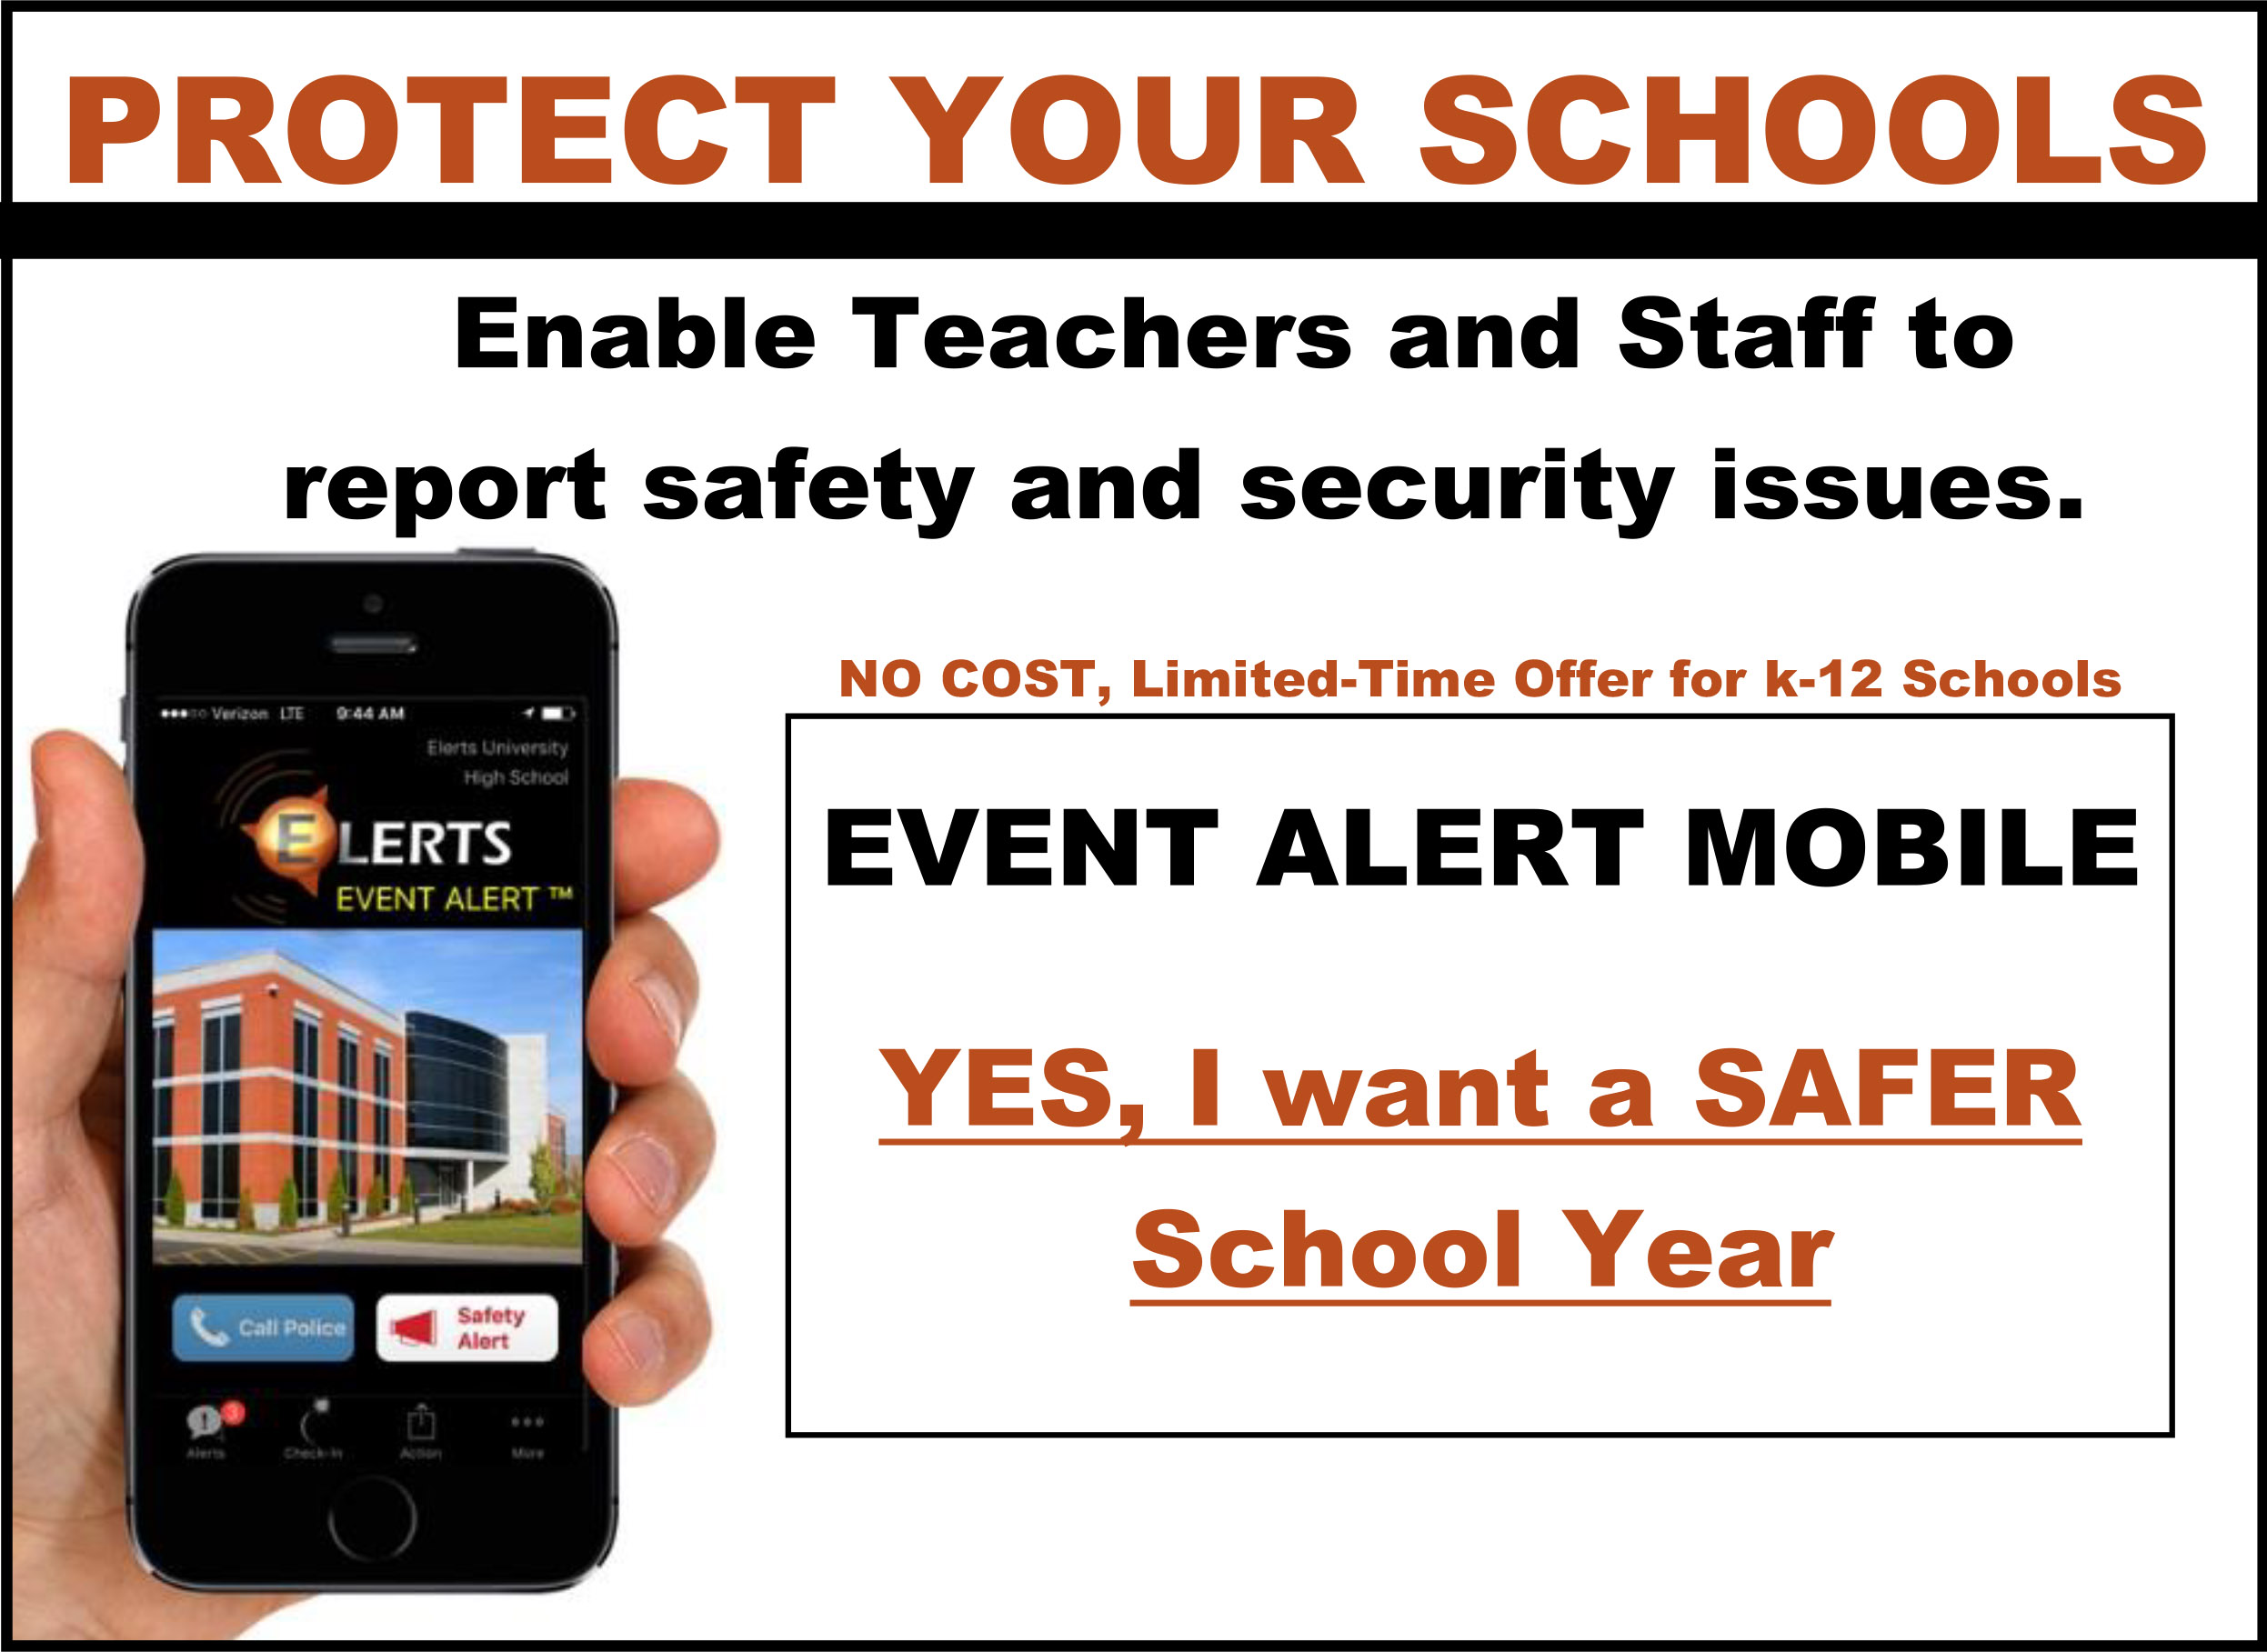 Protect your schools